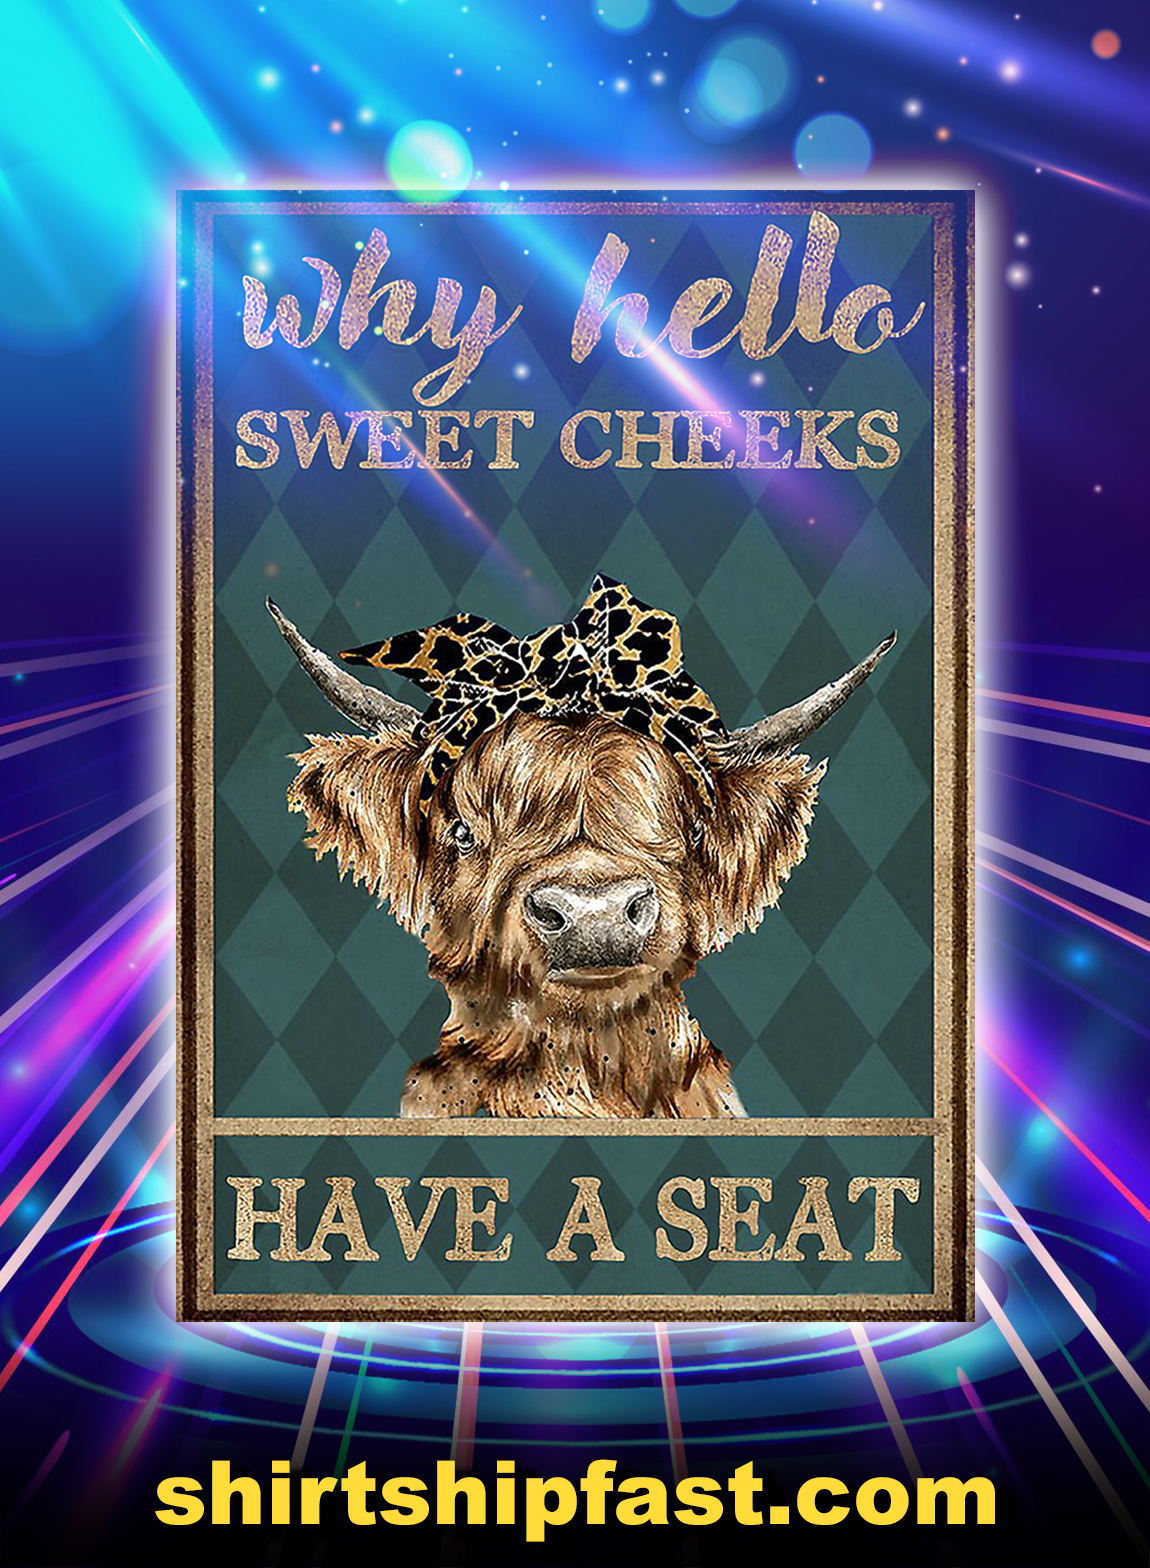 Why hello sweet cheeks have a seat cow highland cattle poster - A2